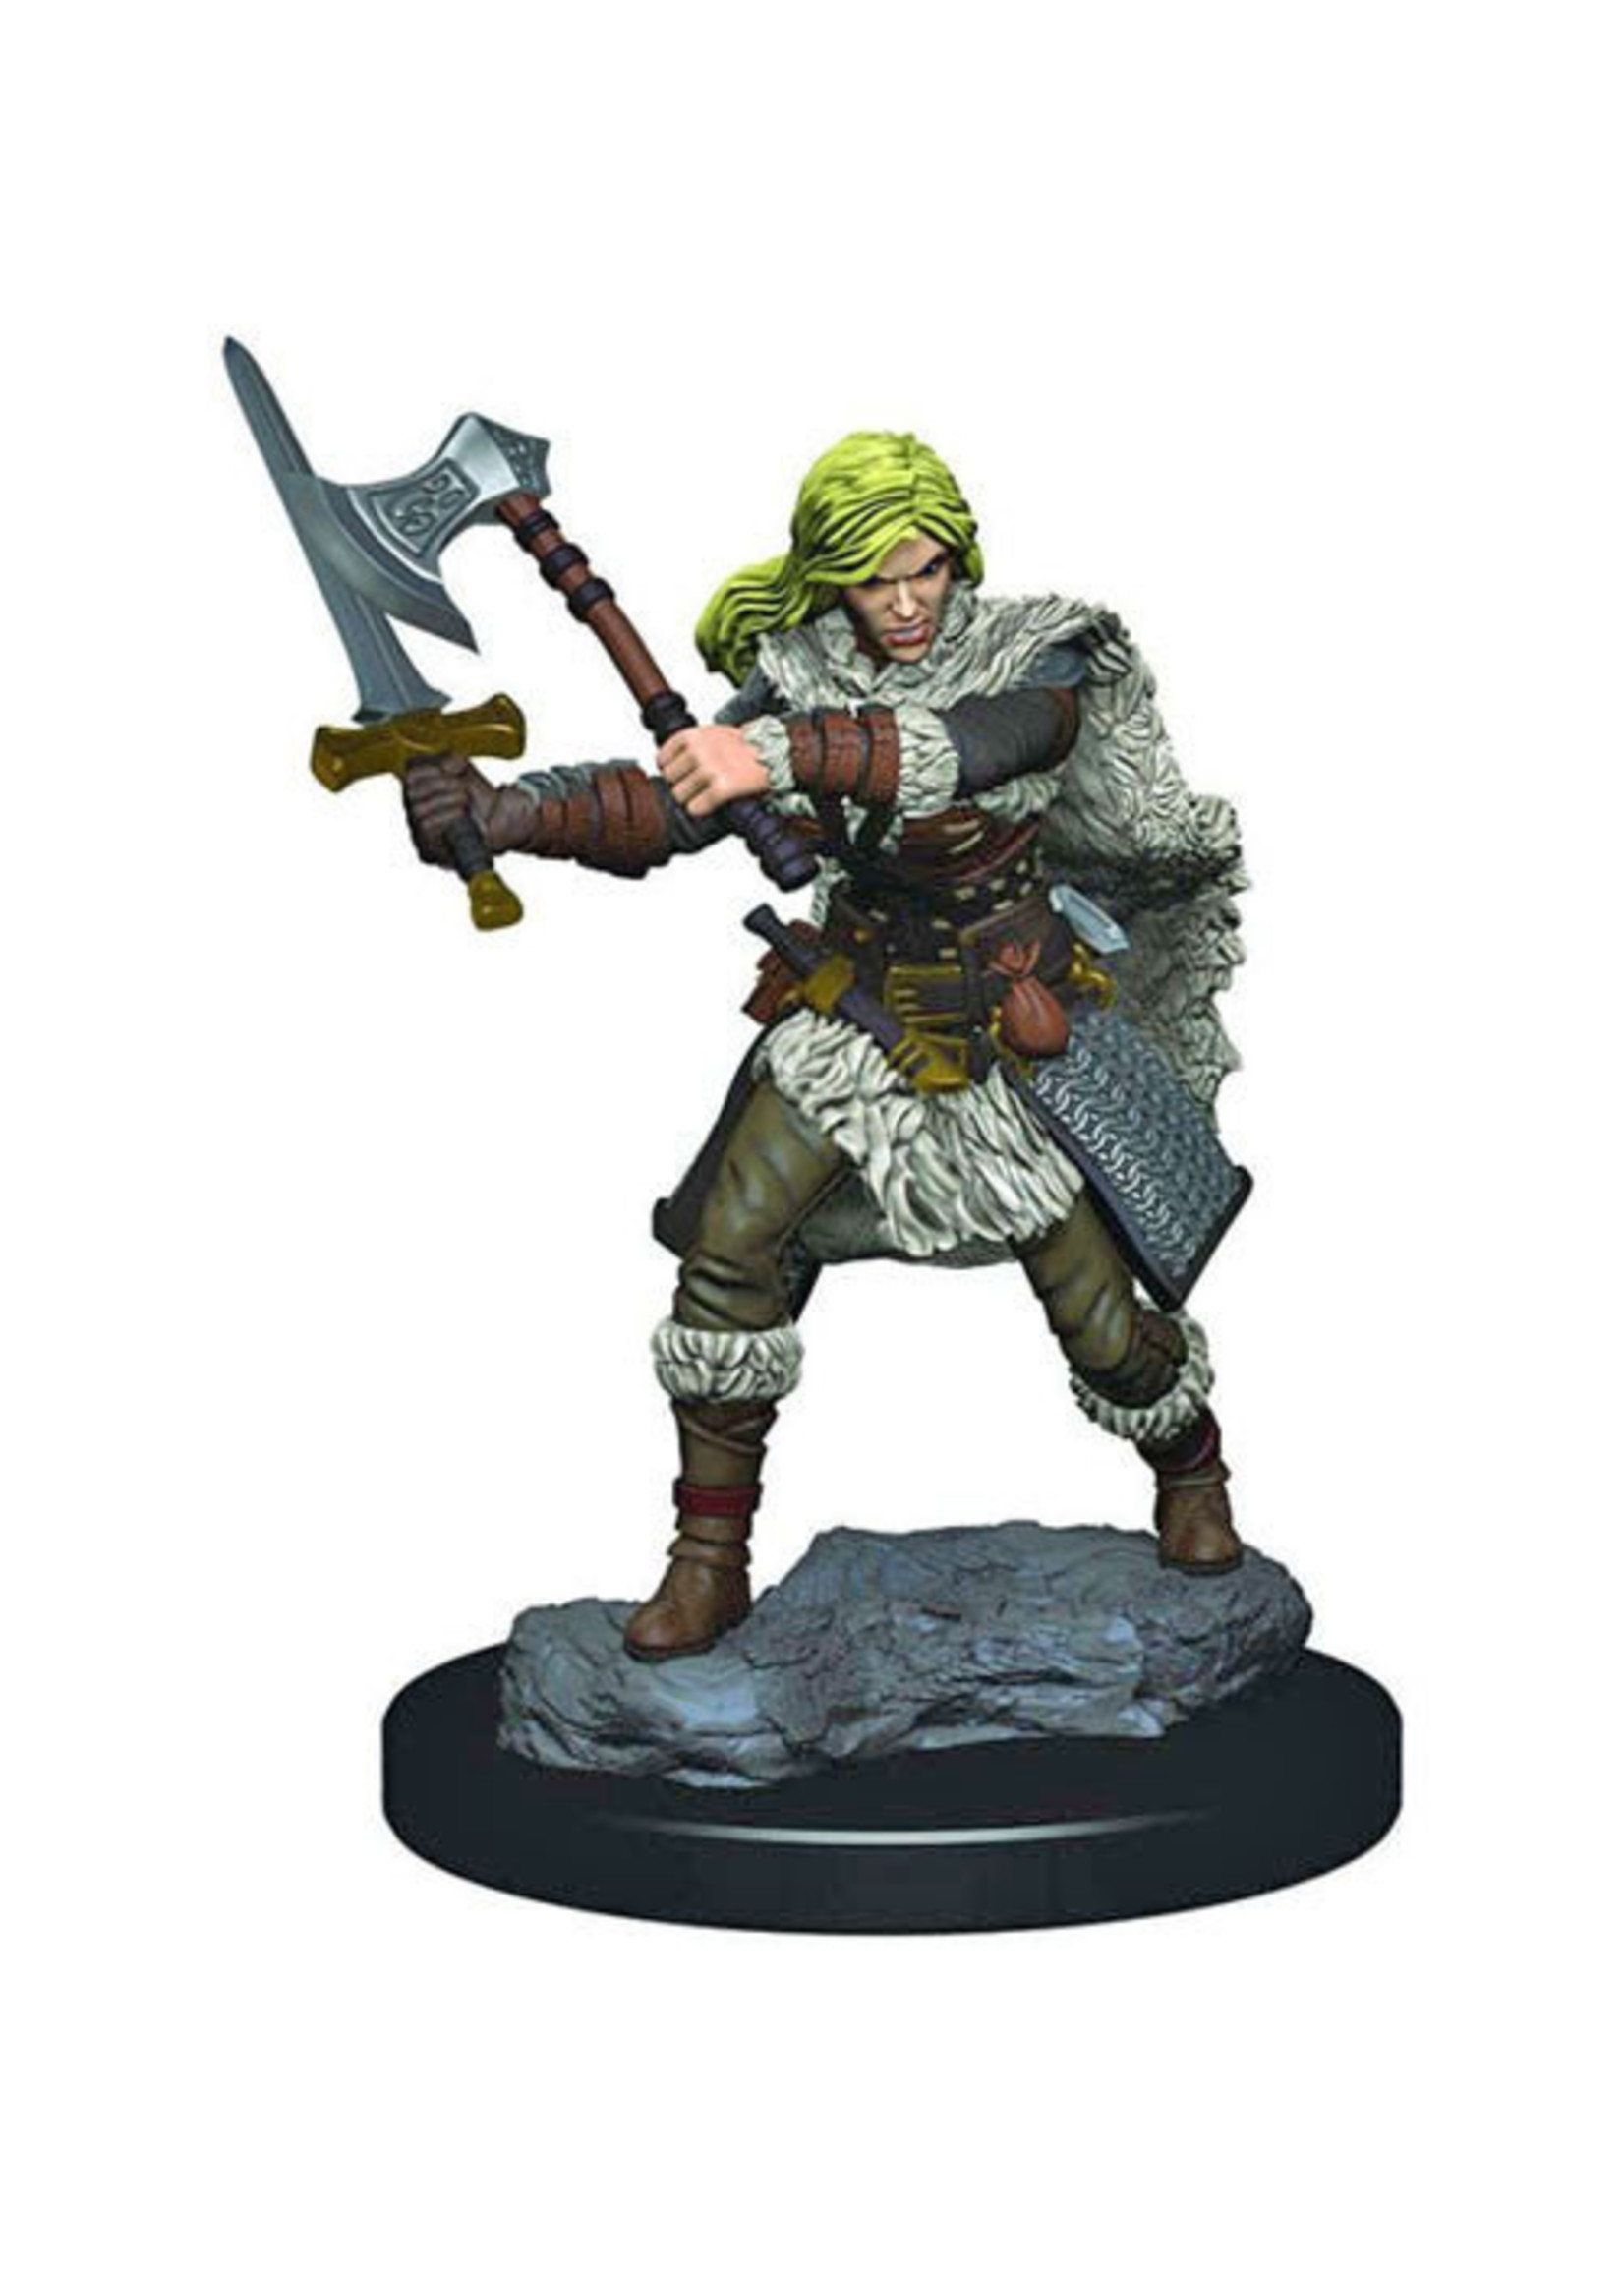 Dungeons & Dragons Fantasy Miniatures: Icons of the Realms Premium Figures Human Female Barbarian